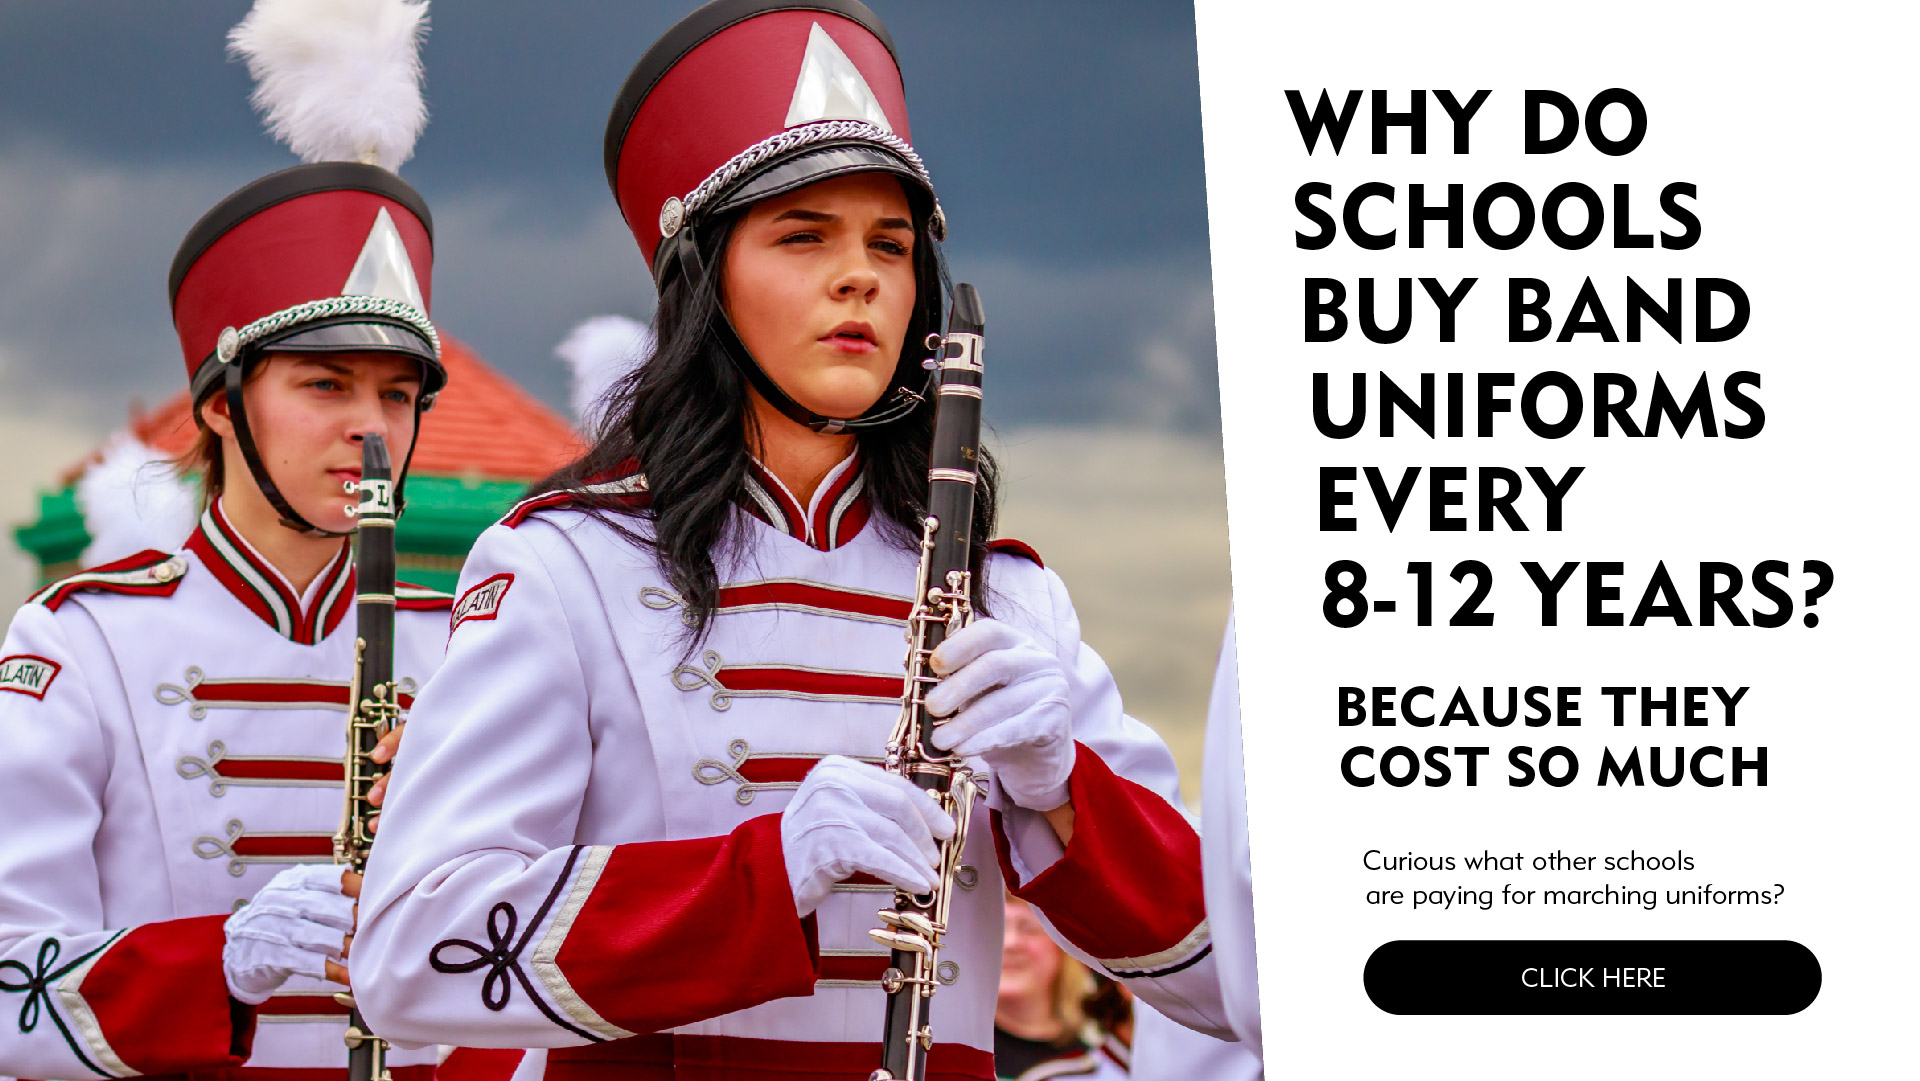 Why do schools buy marching uniforms every 8-12 years? Because they cost so much.